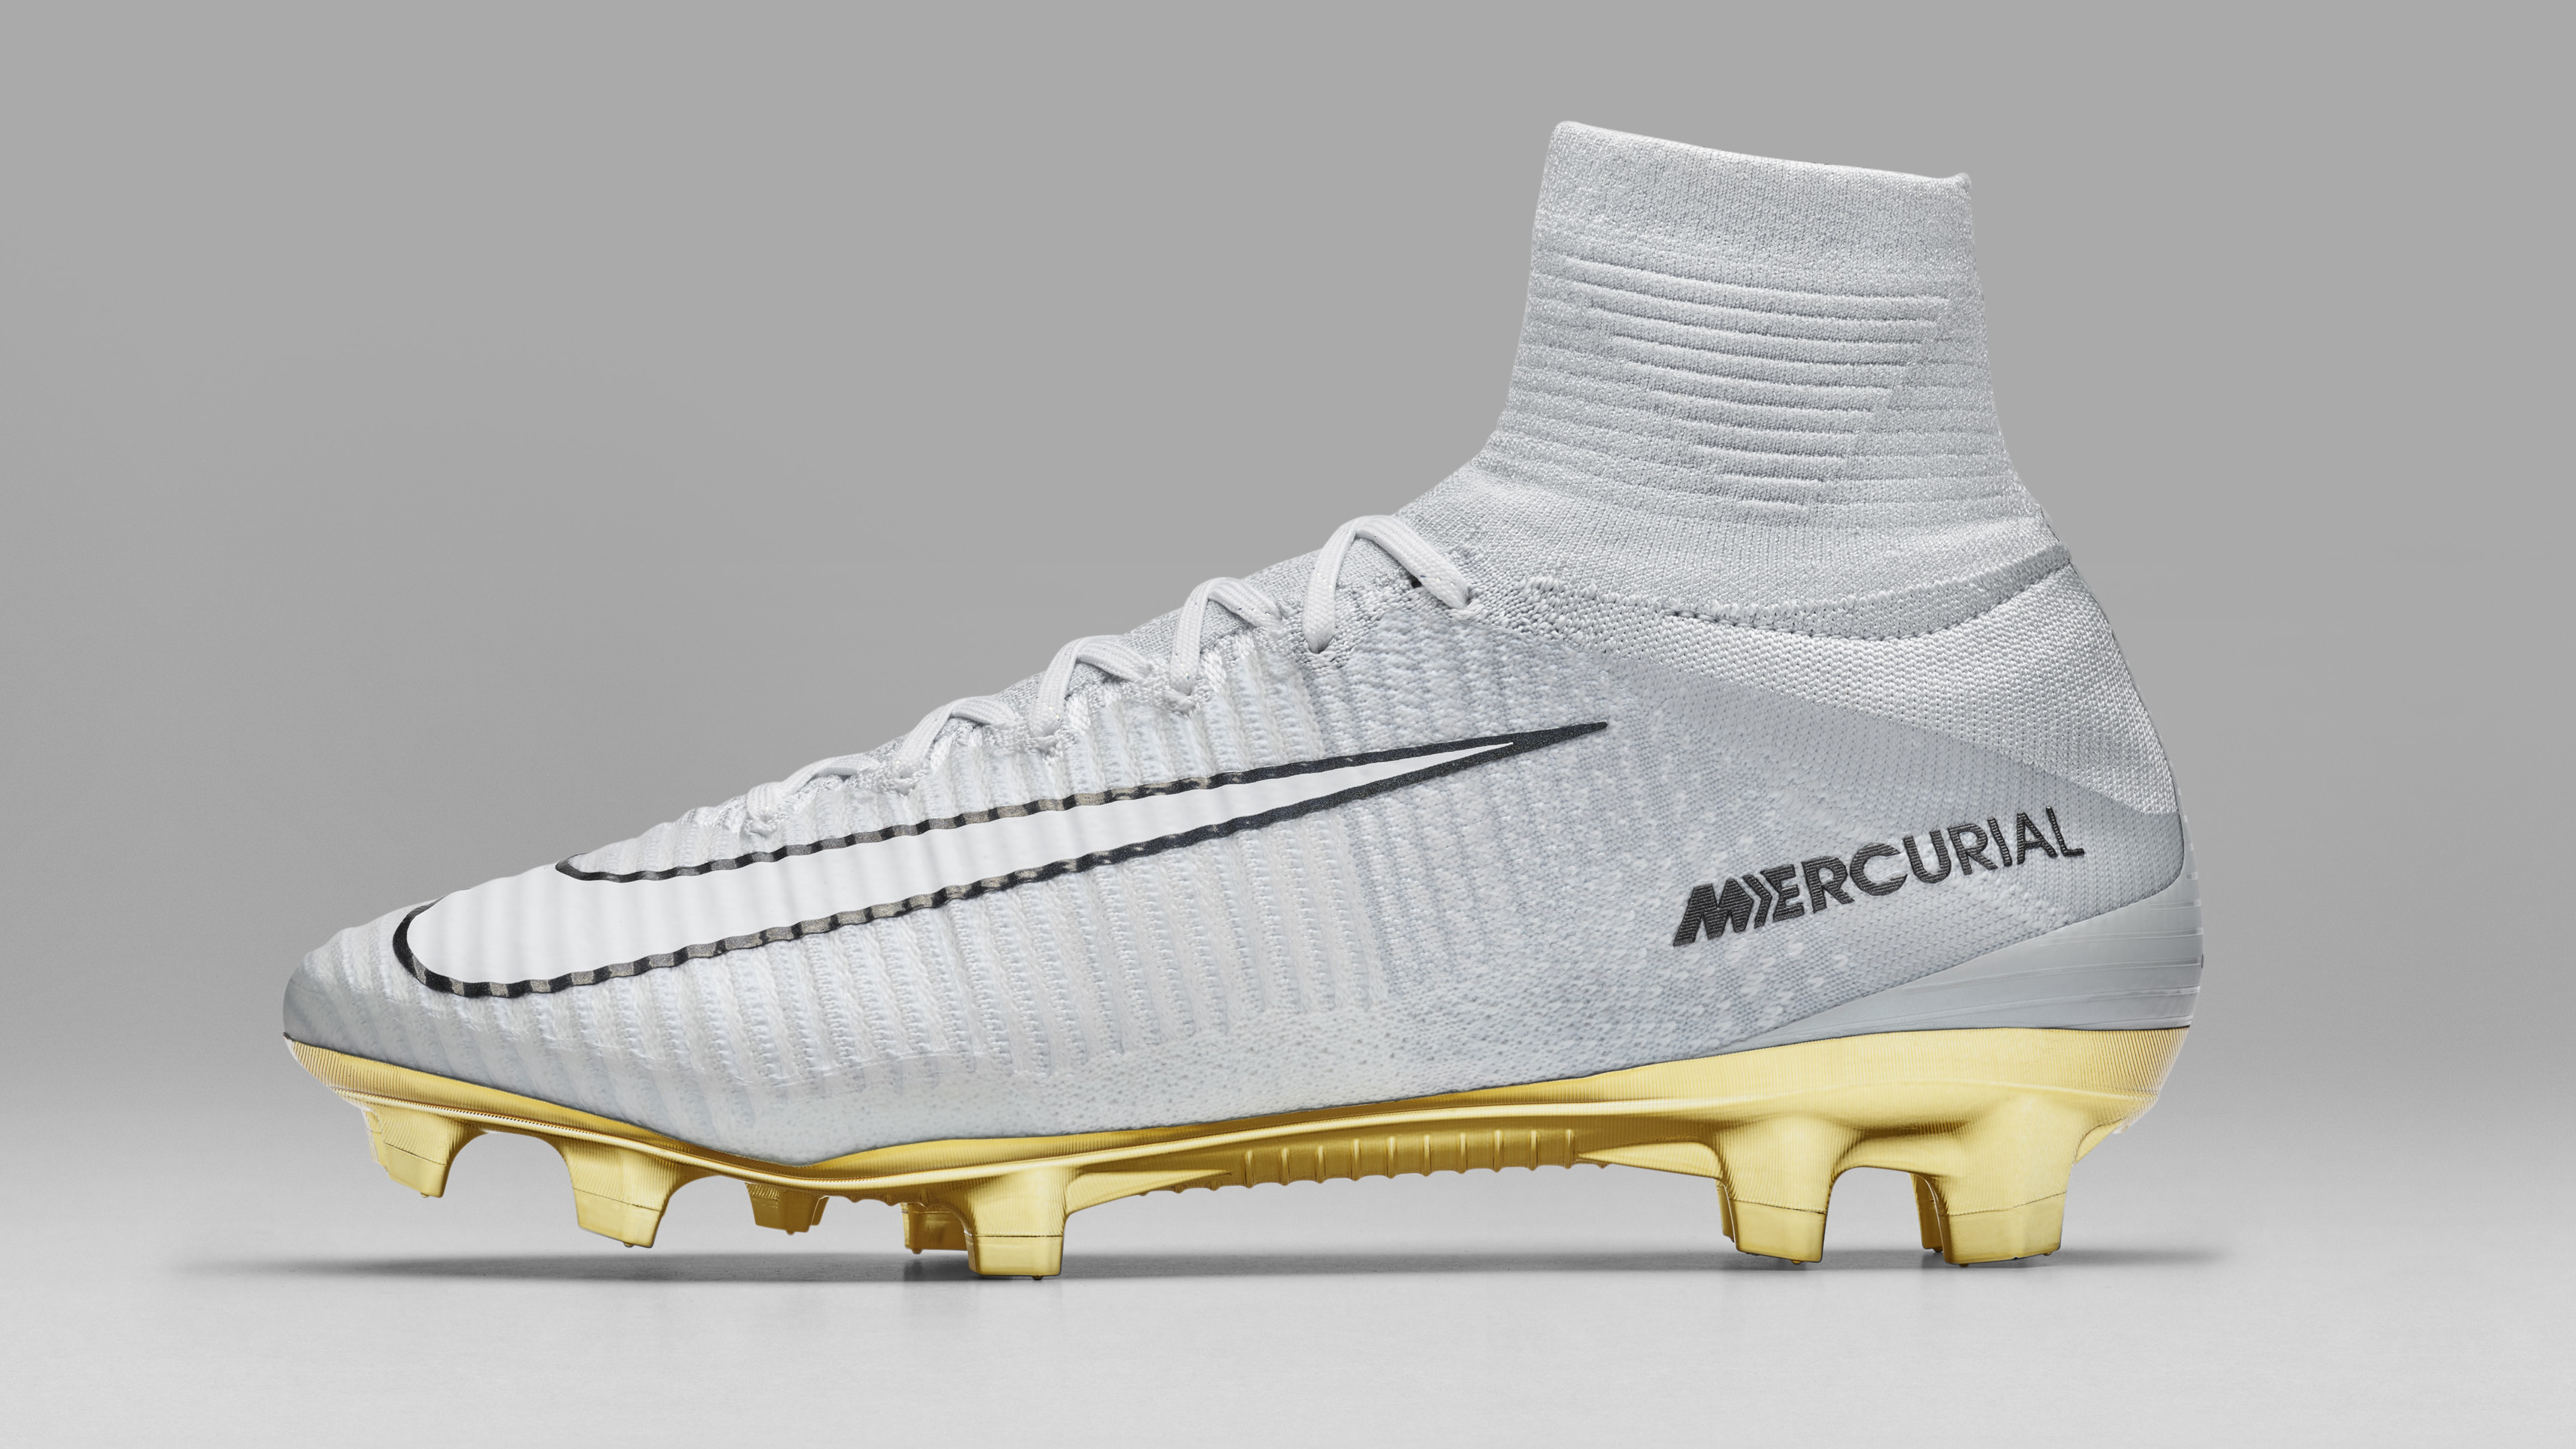 Nike Mercurial Superfly CR7 Vitorias profile